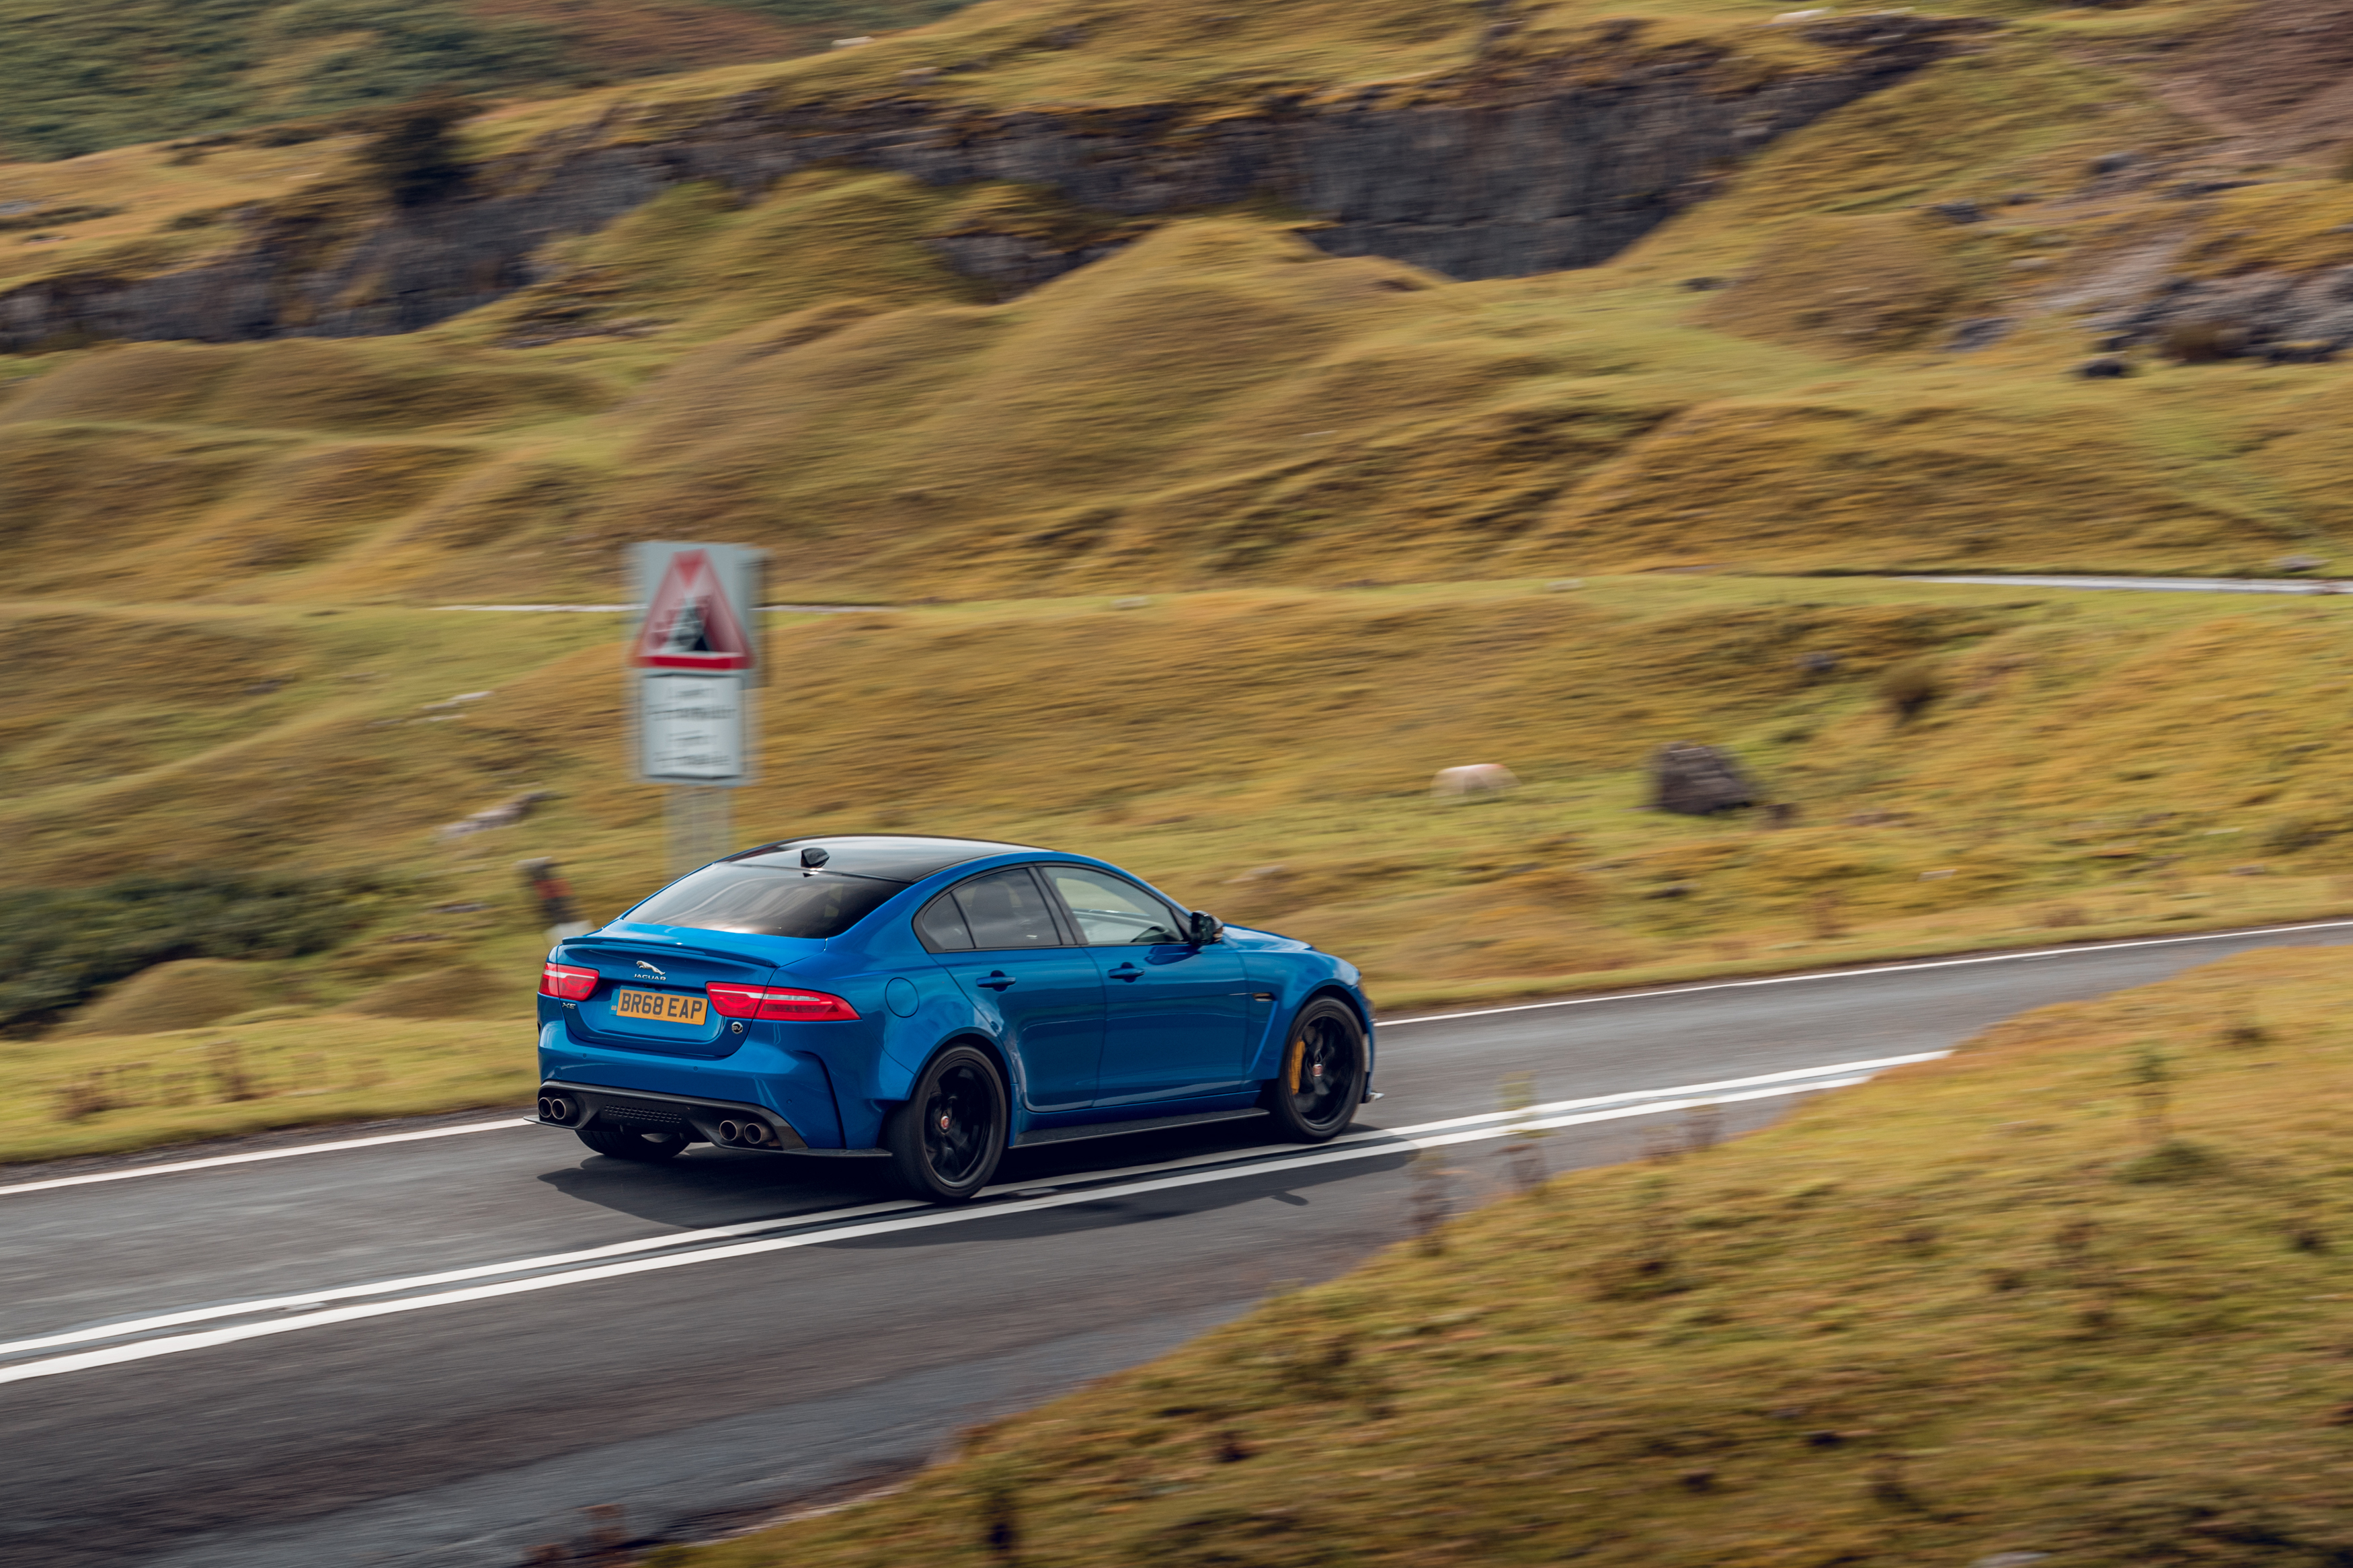 The Project 8 is remarkably composed on the road